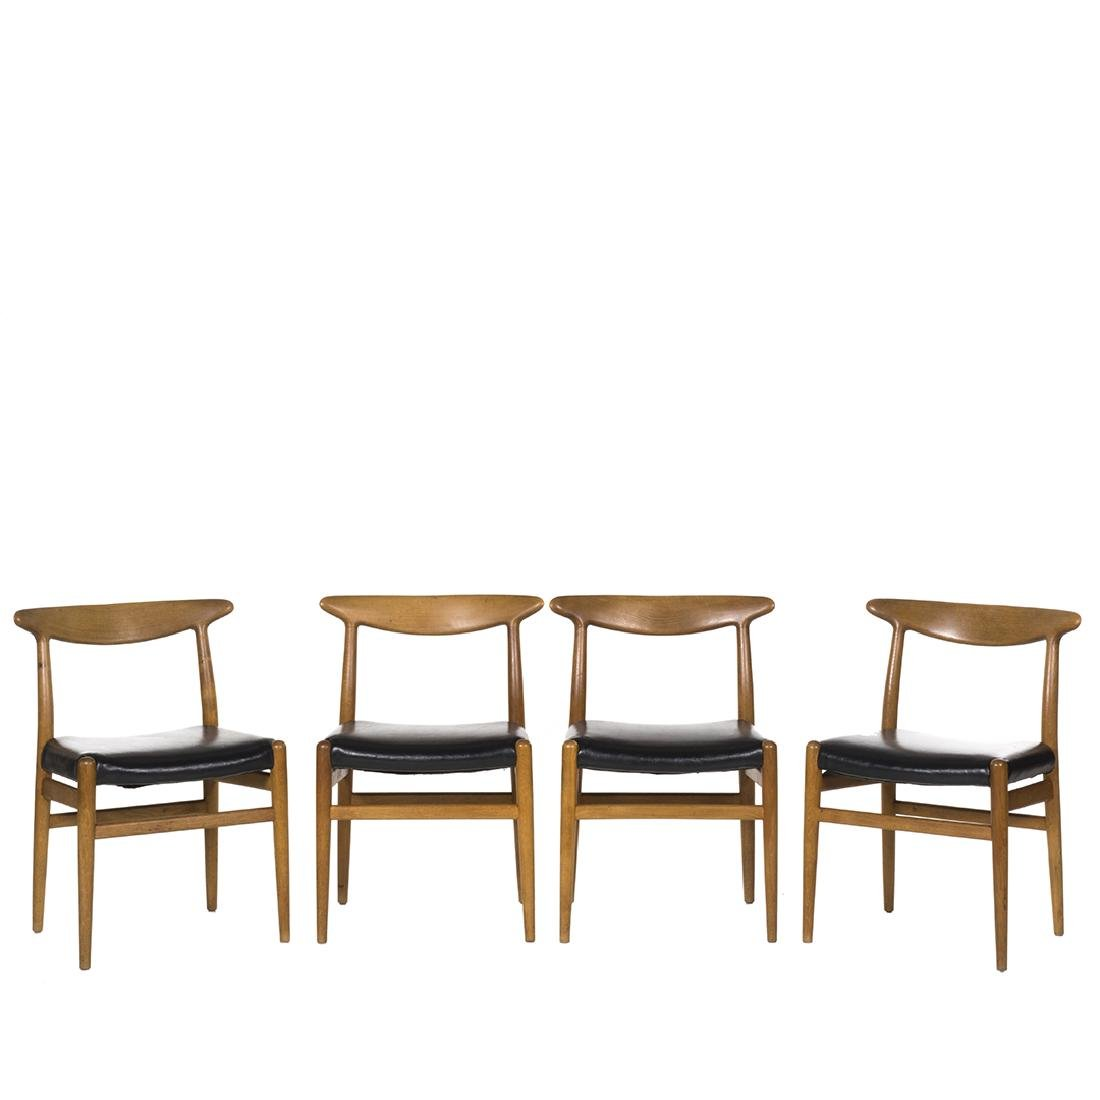 Hans Wegner Dining Chairs (4)